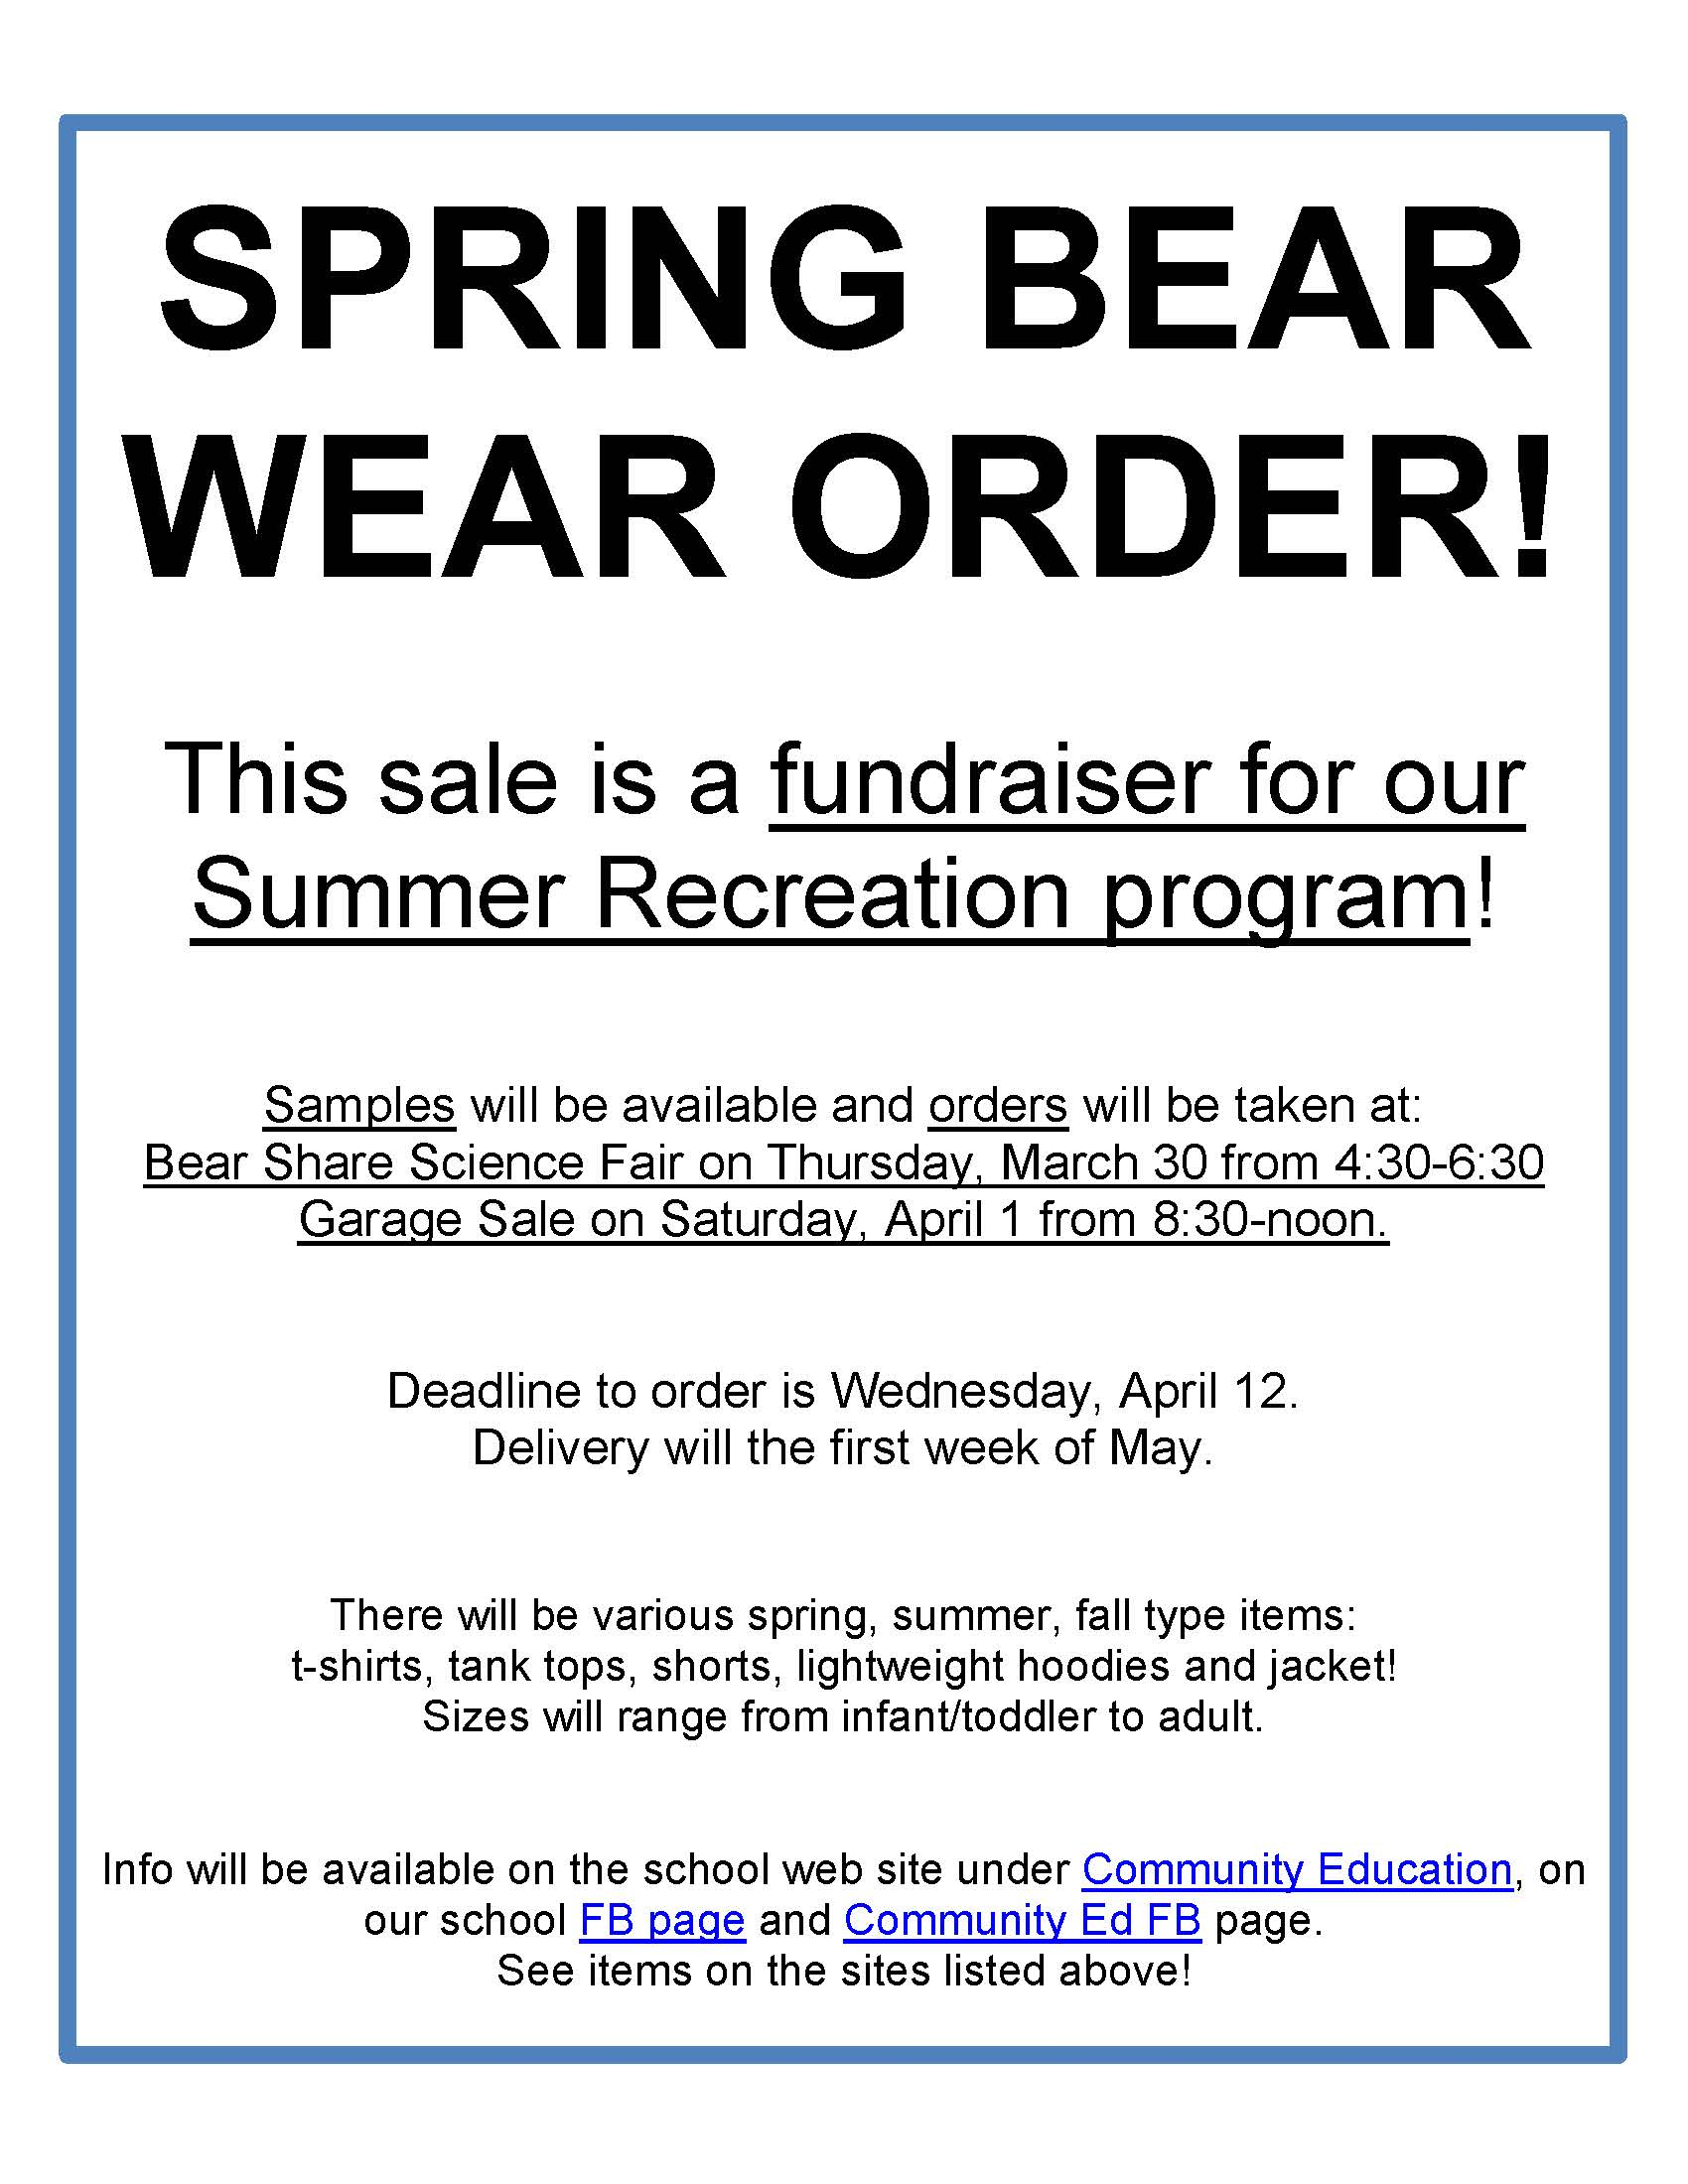 clearbrook gonvick district 2311 bear wear spring order inserted image